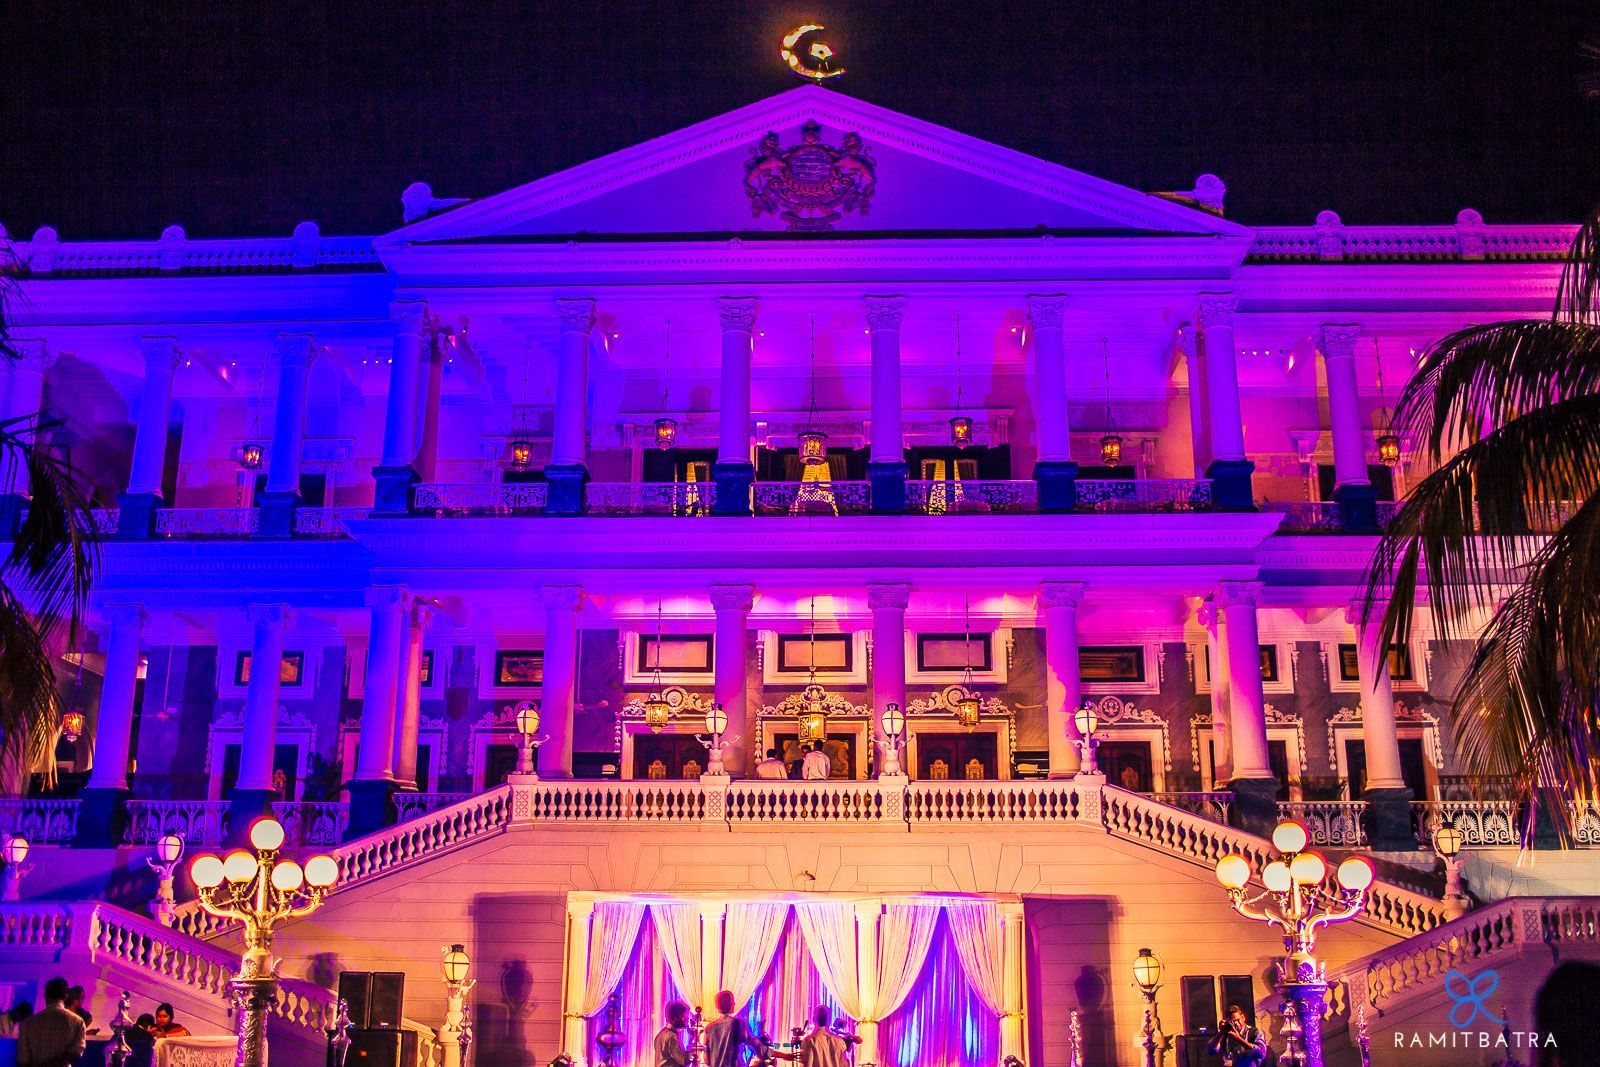 8 Royal Palaces In India For A Grand Destination Wedding Royal